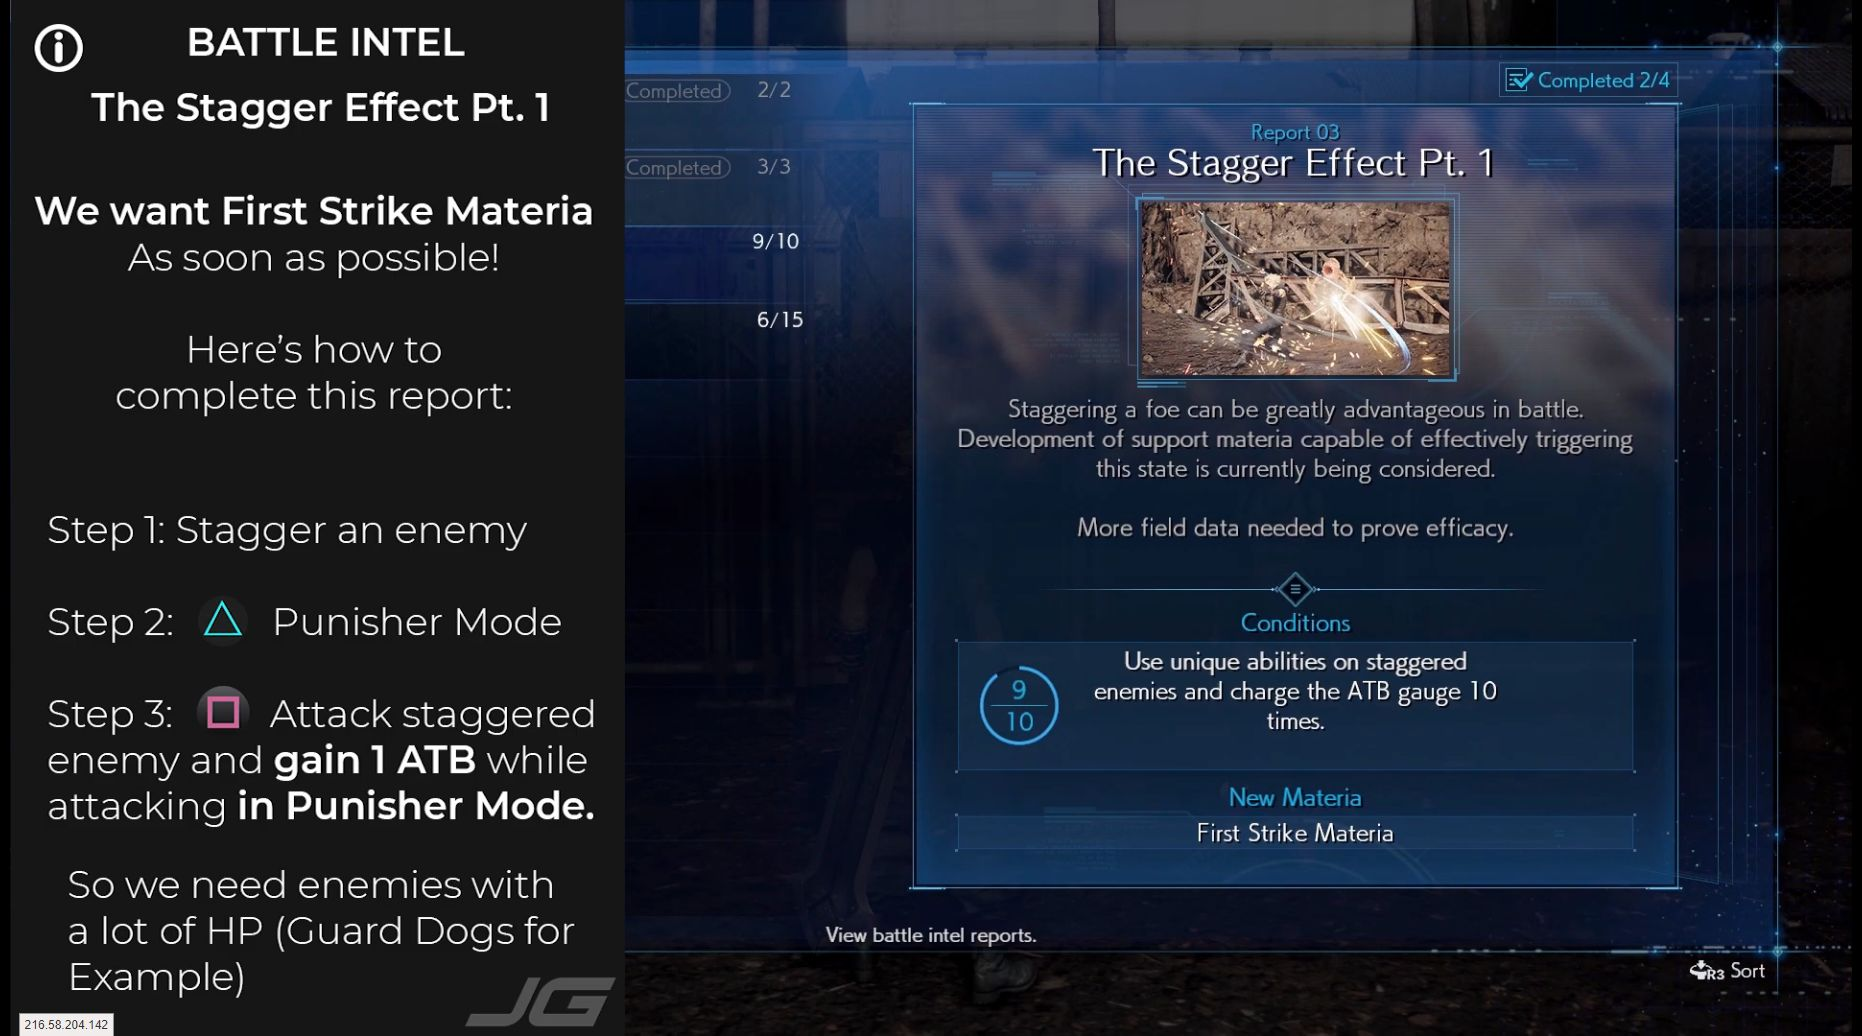 The Stagger Effet Part 1 - We want First Striek Materia ASAP - Here's how to complete this report Step 1 : Stagger an enemy Step 2 : (Triangle) Punisher Mode Step 3 : (Square) Attack the staggered enemy and gain 1 ATB while attacking